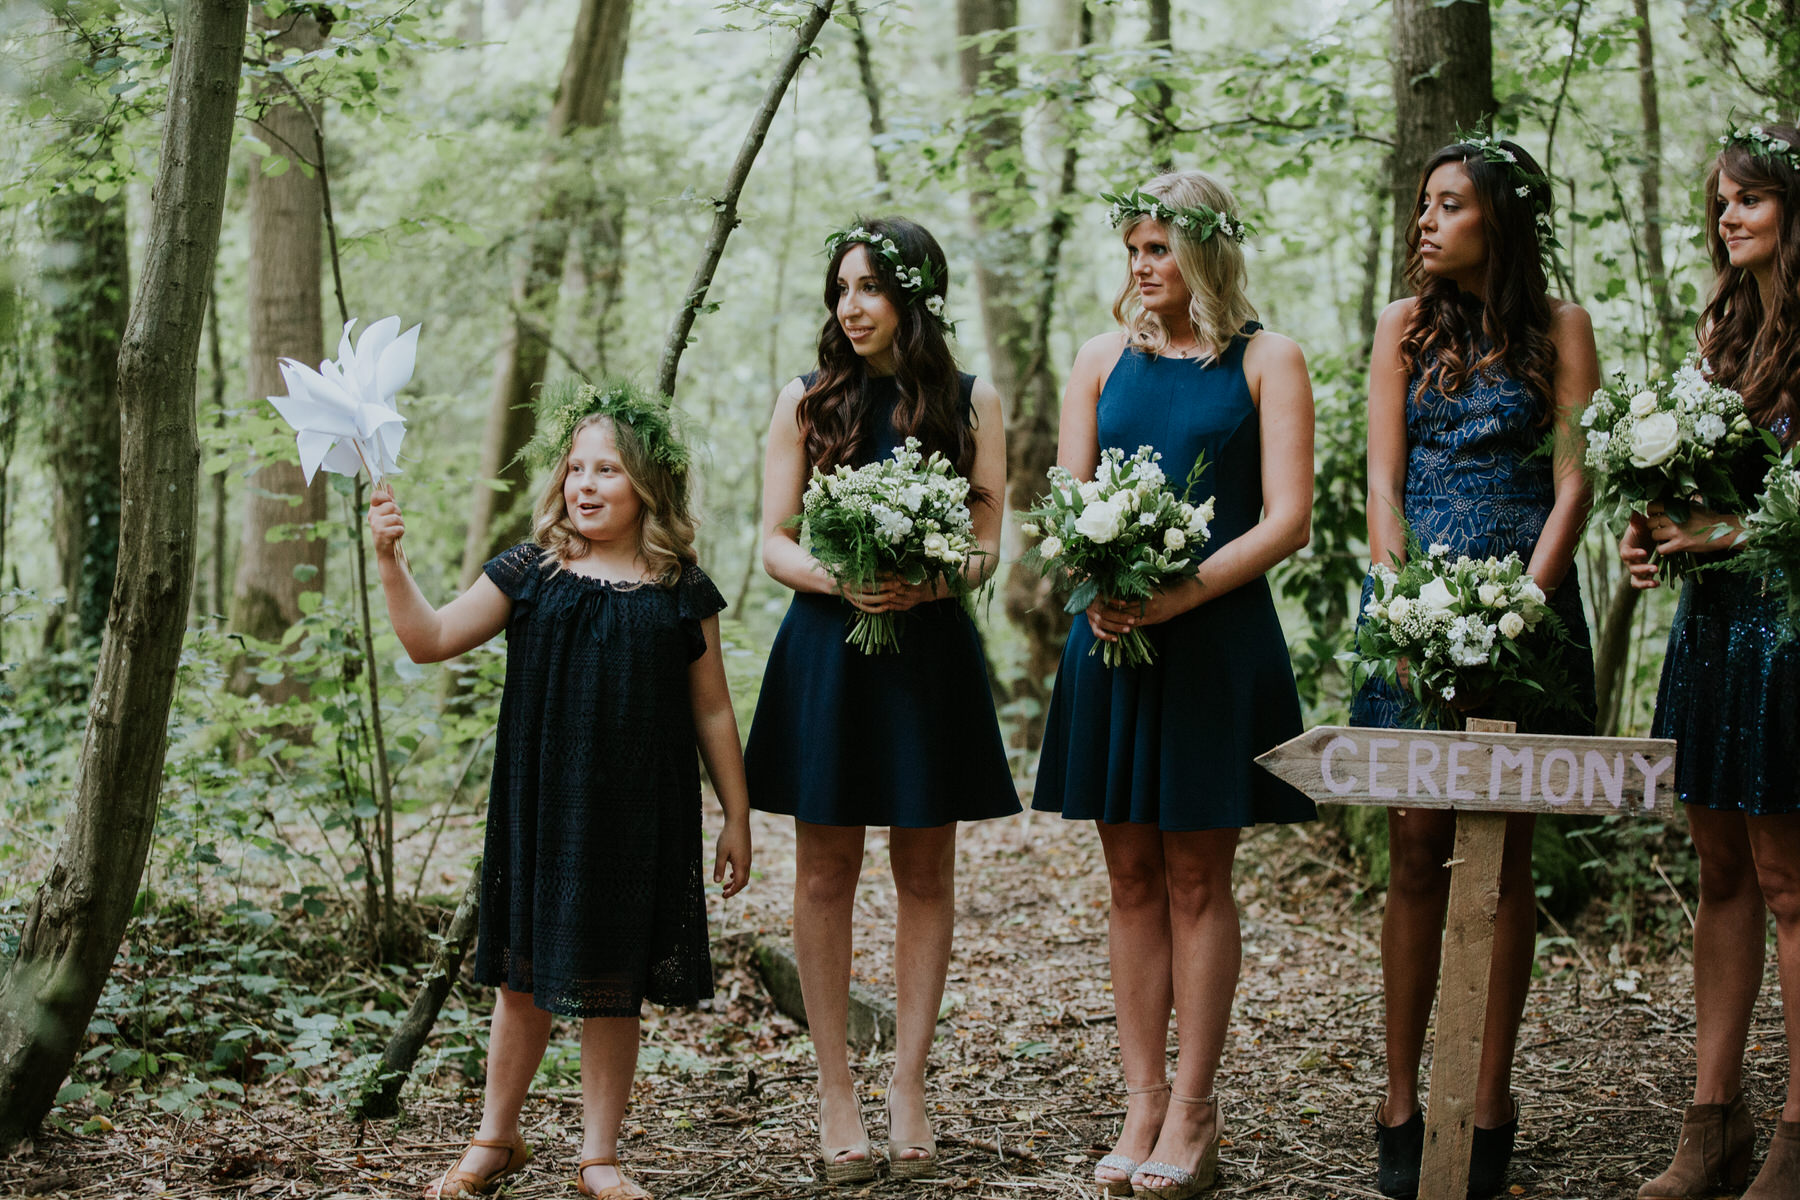 60 bridesmaids flower girl holding white origami windmill forest wedding.jpg